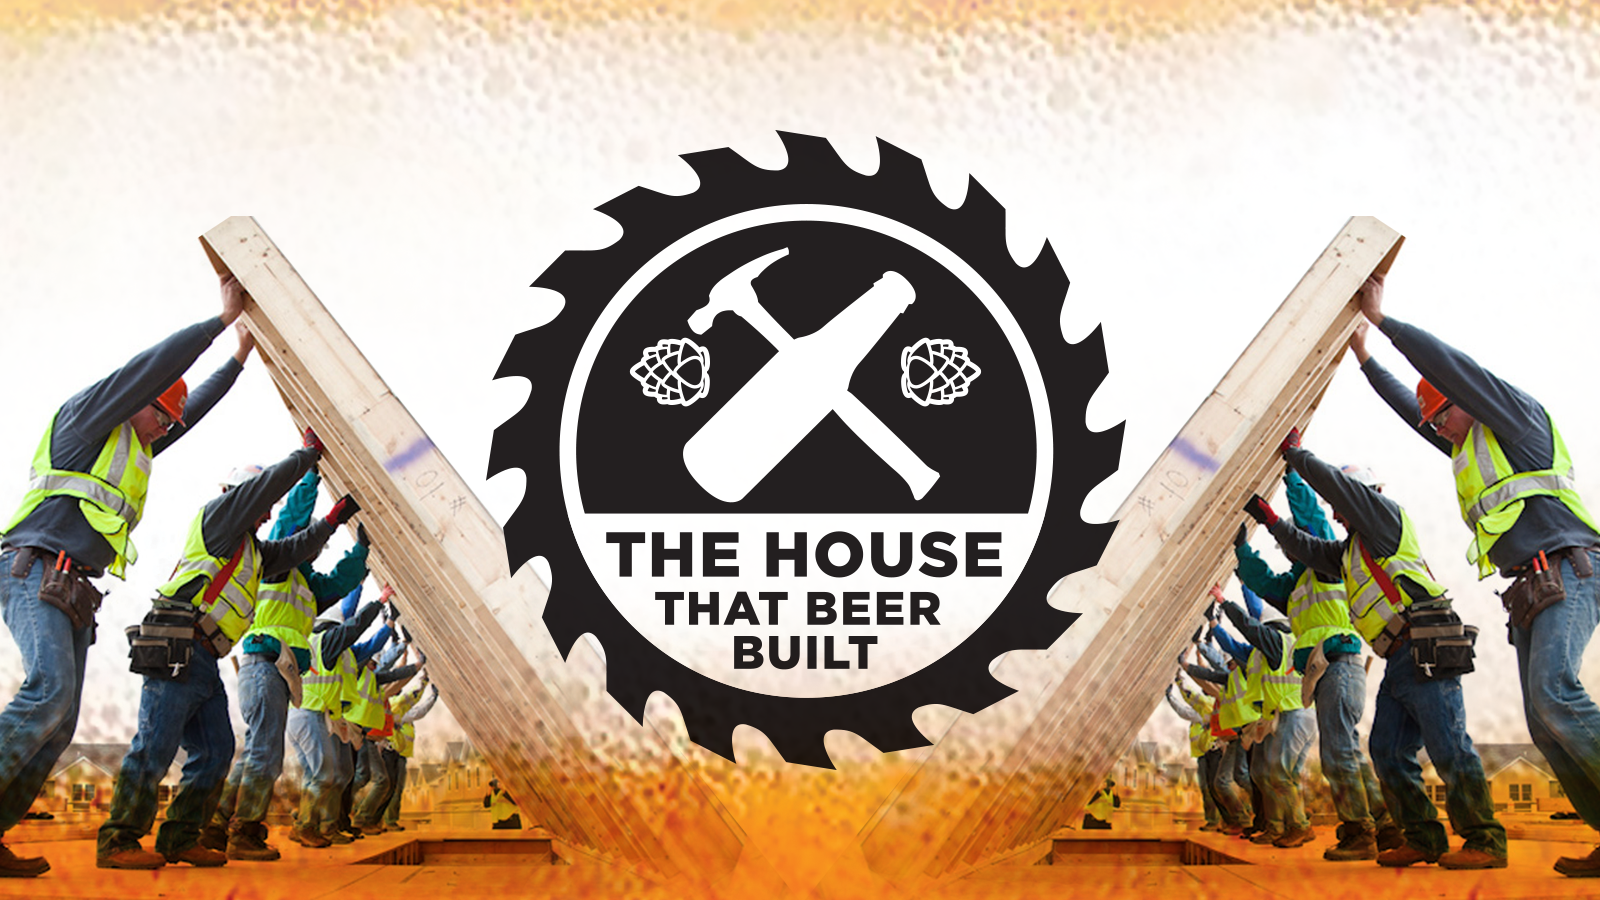 The House that Beer Built - Twin Cities Habitat for Humanity